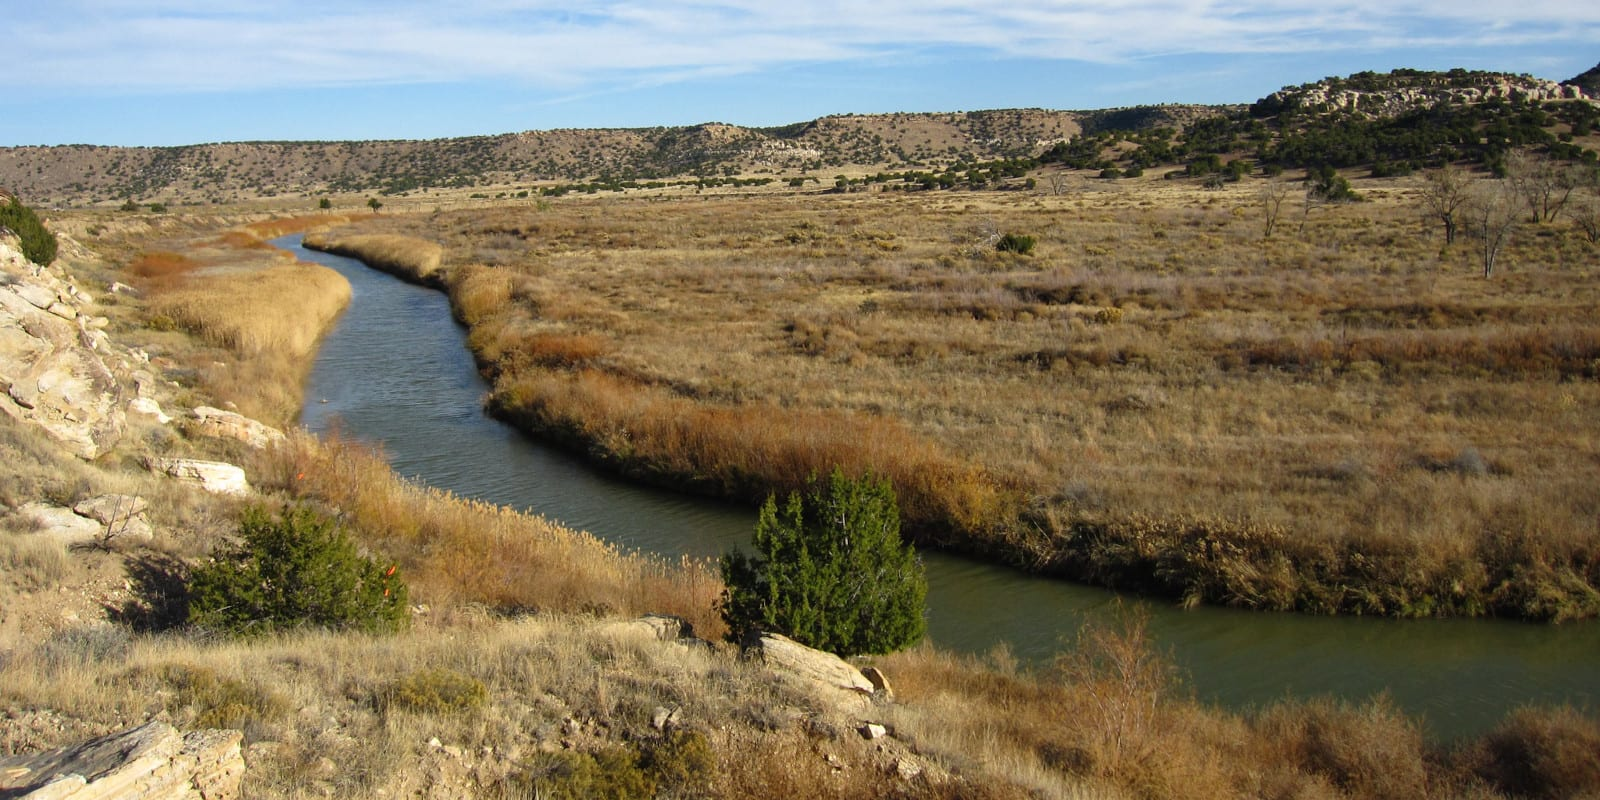 Image of the Purgatoire River flowing through the plains